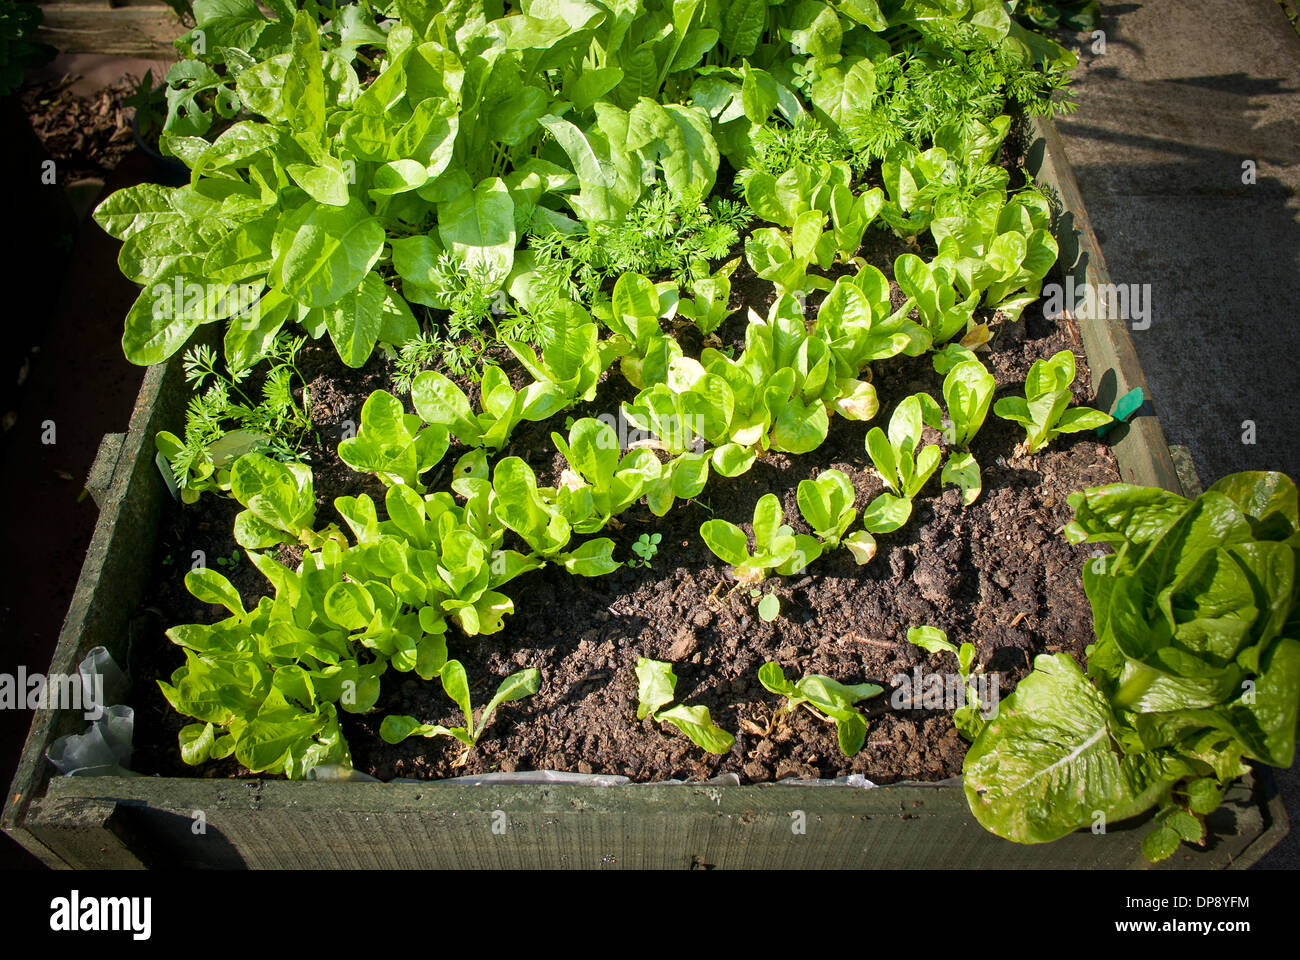 young salad seedlings in raised wooden planter - Stock Image